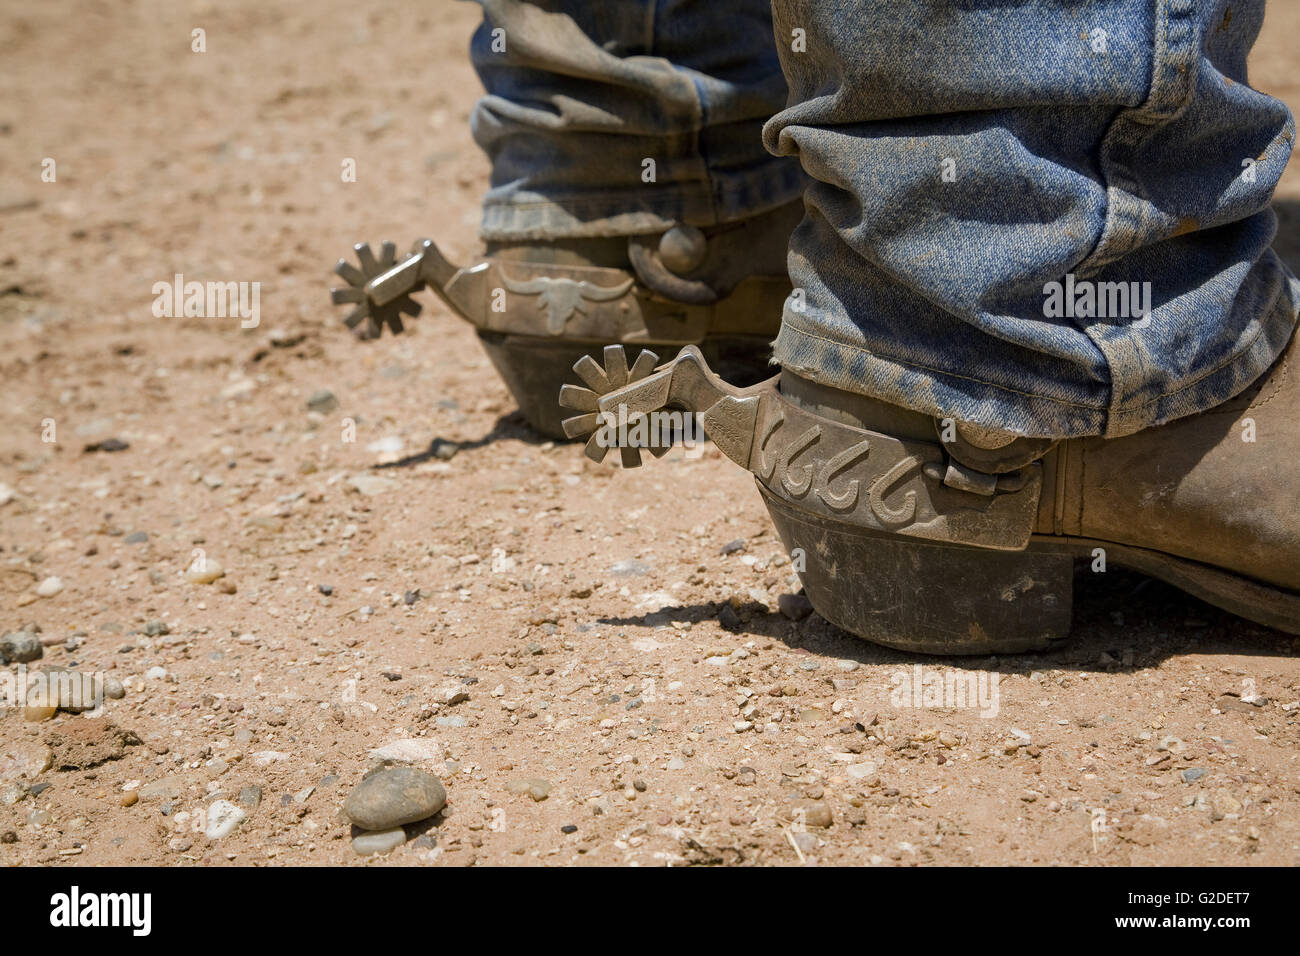 Cowboys Boots and Spurs, Close-Up, Texas, USA - Stock Image